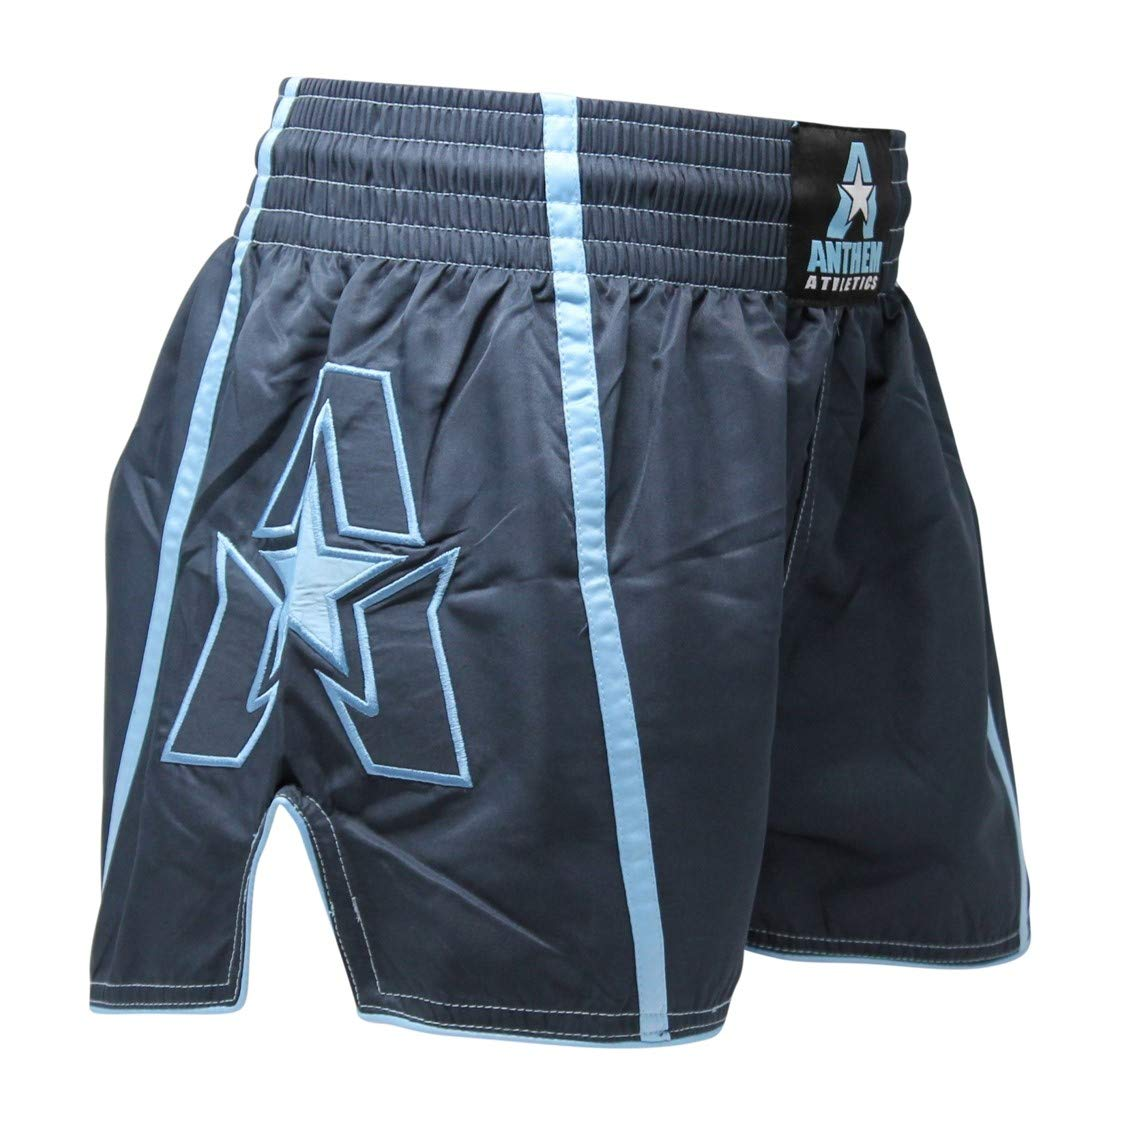 Anthem Athletics Infinity Ghost G2 Muay Thai Shorts - Kickboxing, Thai Boxing - Ghost Navy G2 - Small